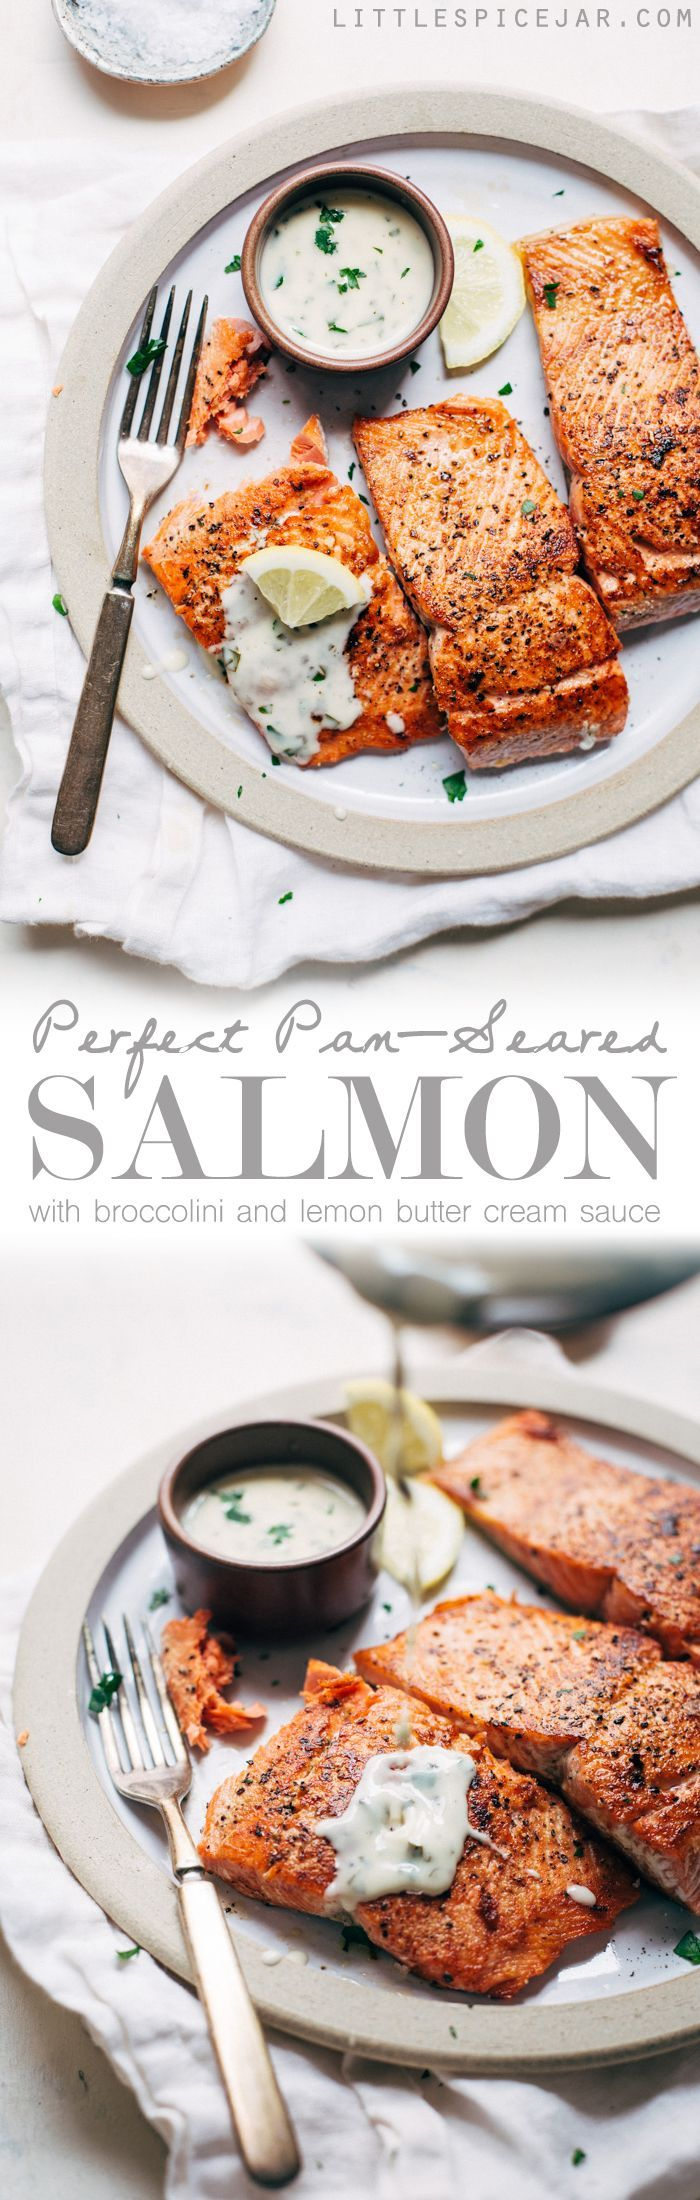 Perfect Pan Seared Salmon with a 4 Ingredient Lemon Butter Cream Sauce | Littlespicejar.com